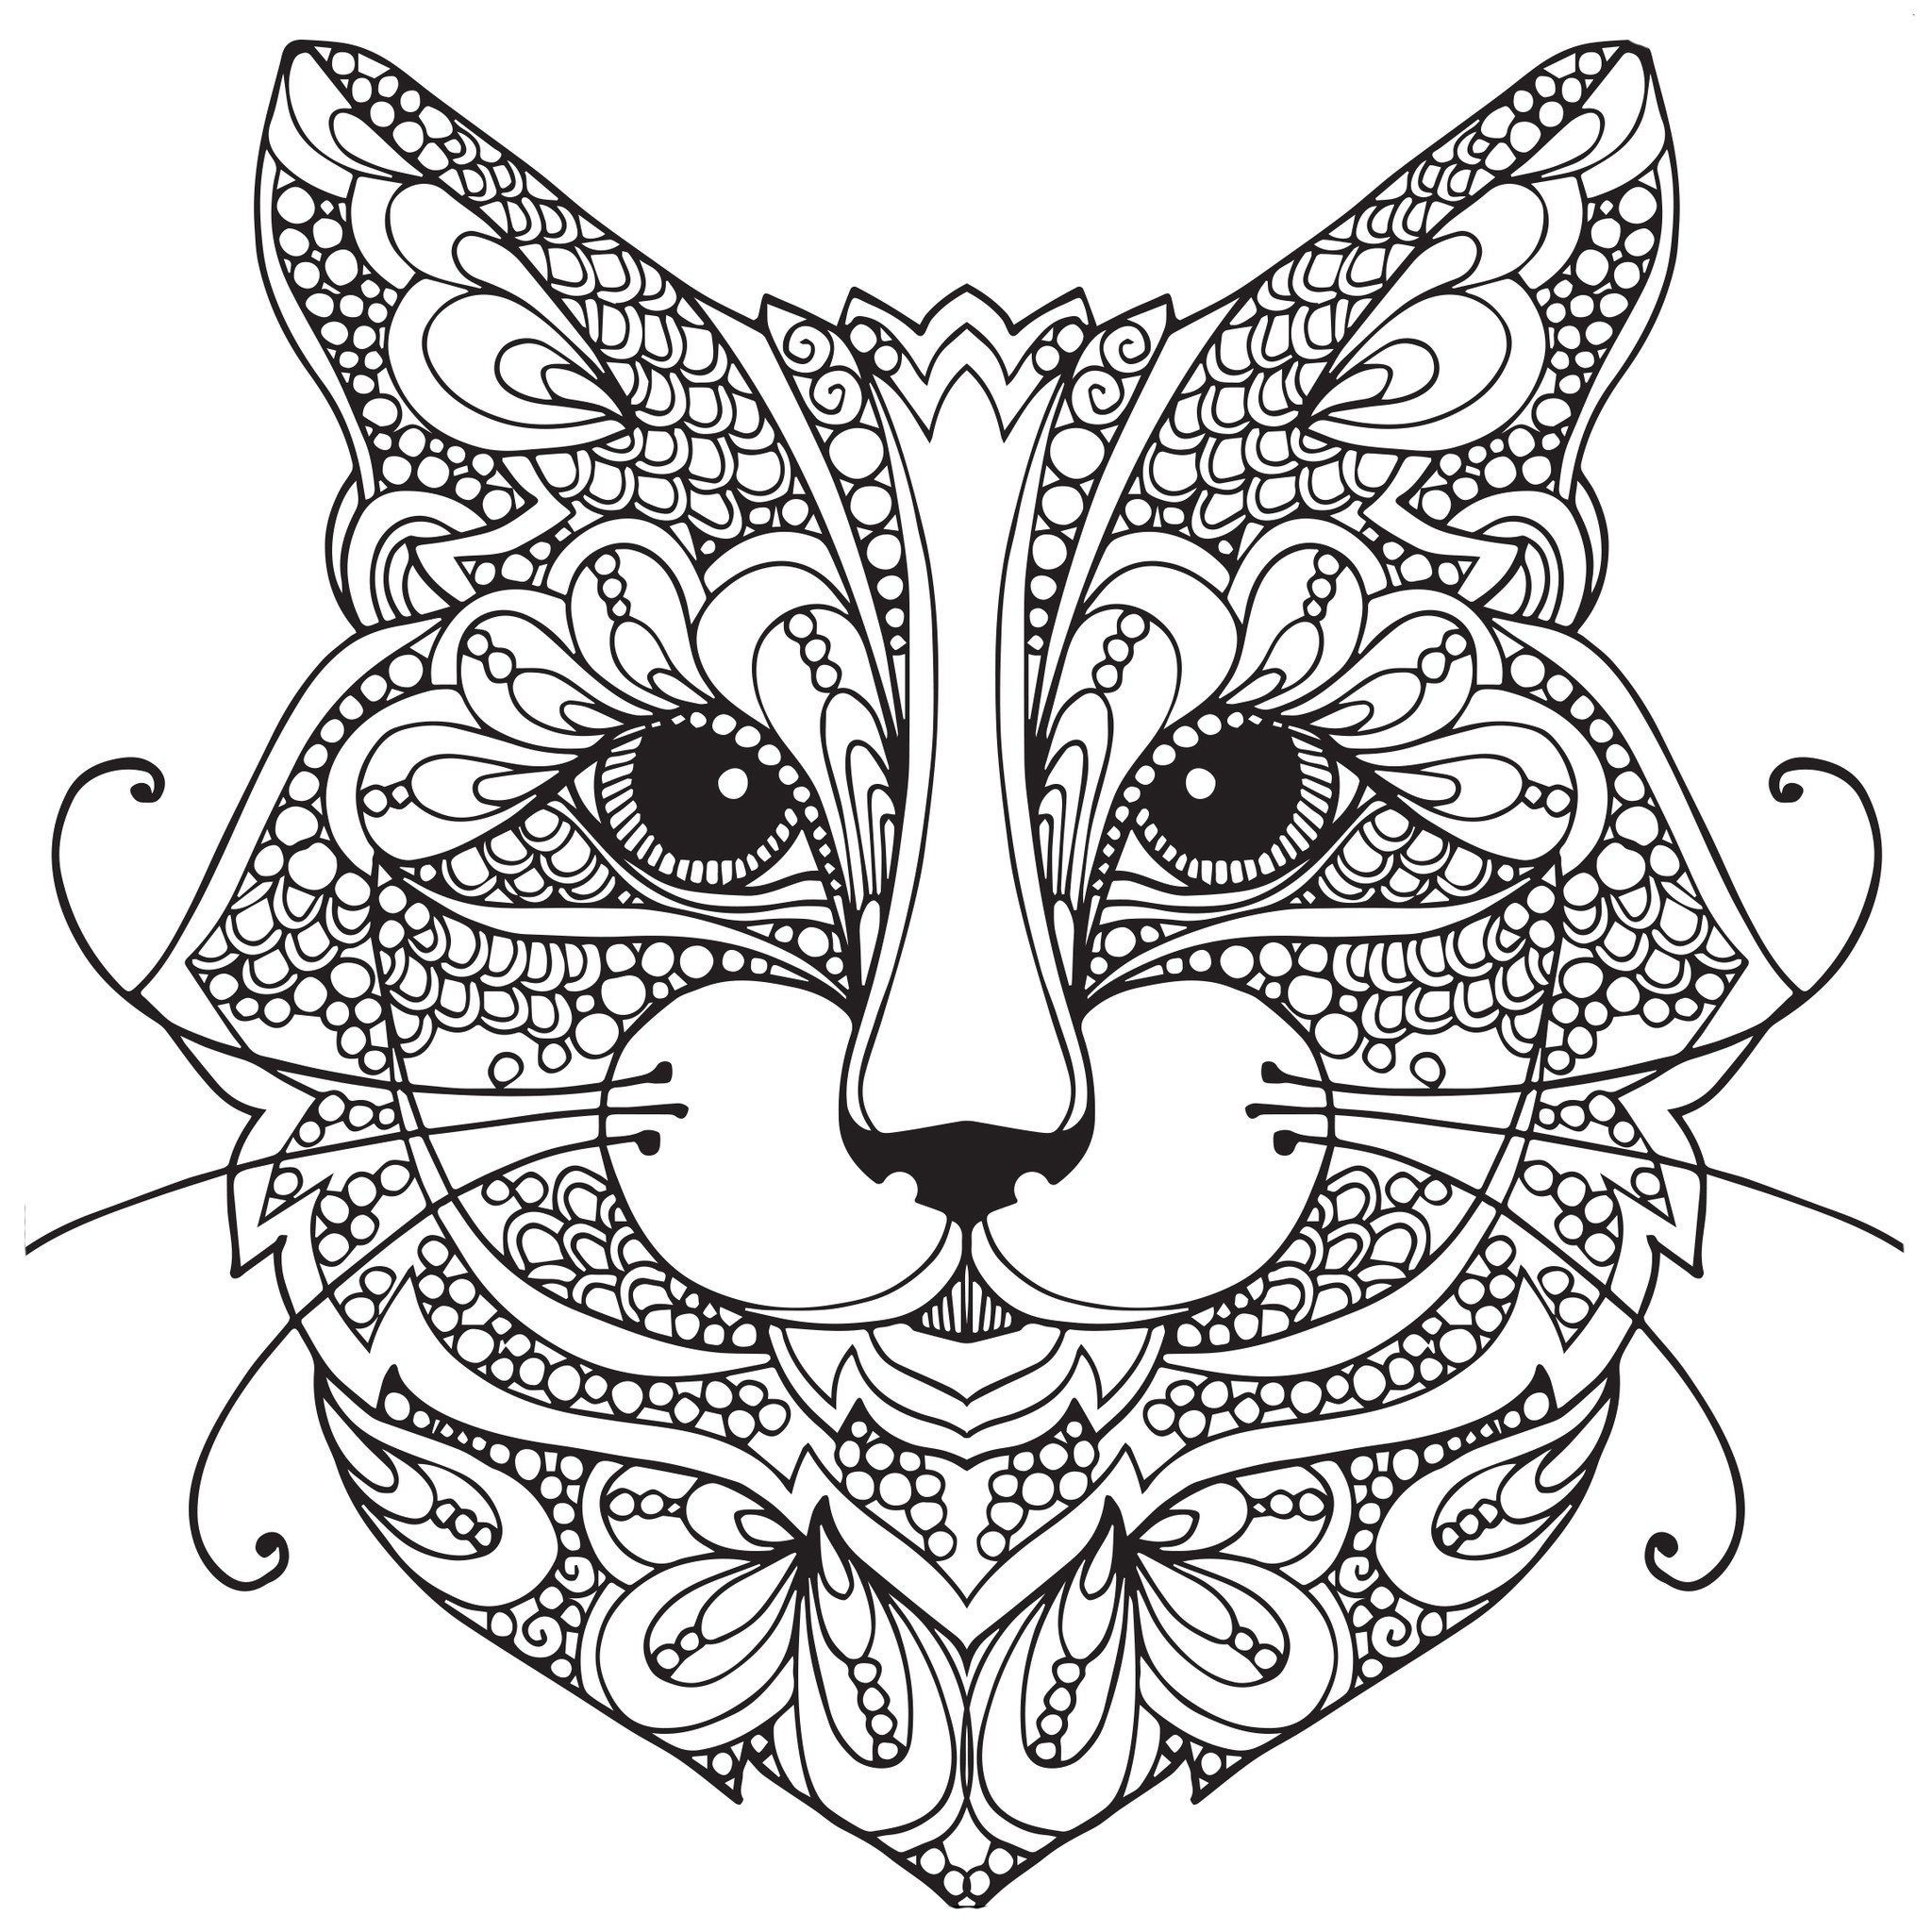 Cats Adult Coloring Book  Adult Coloring Pages Cat 1 coloring pages